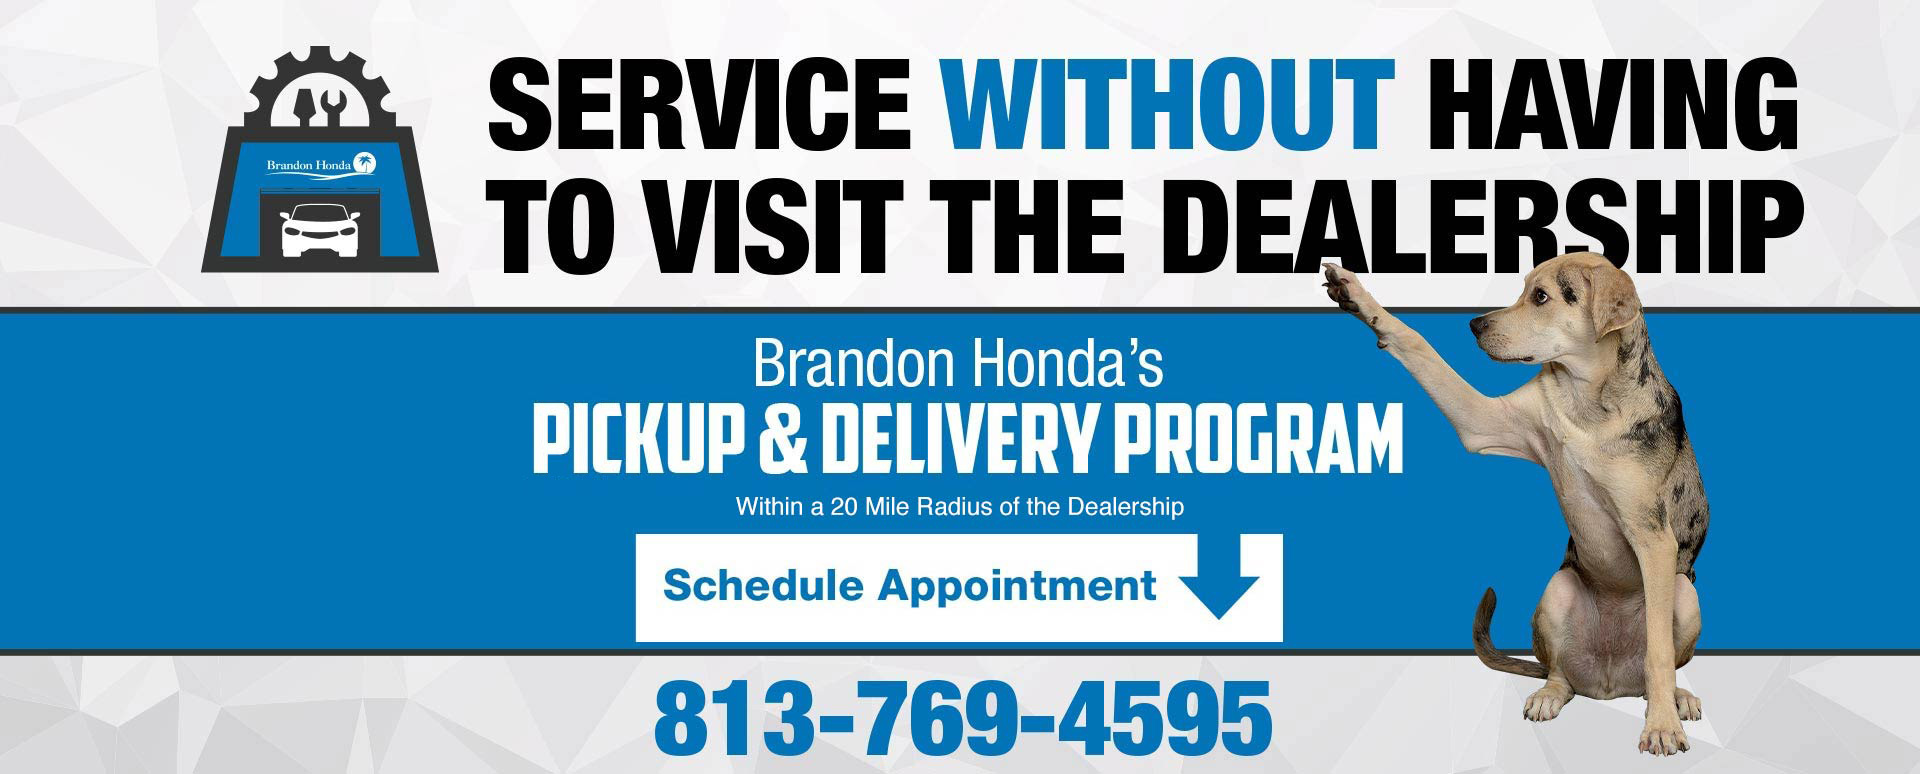 Service Pick-up and Delivery program without visiting the dealership